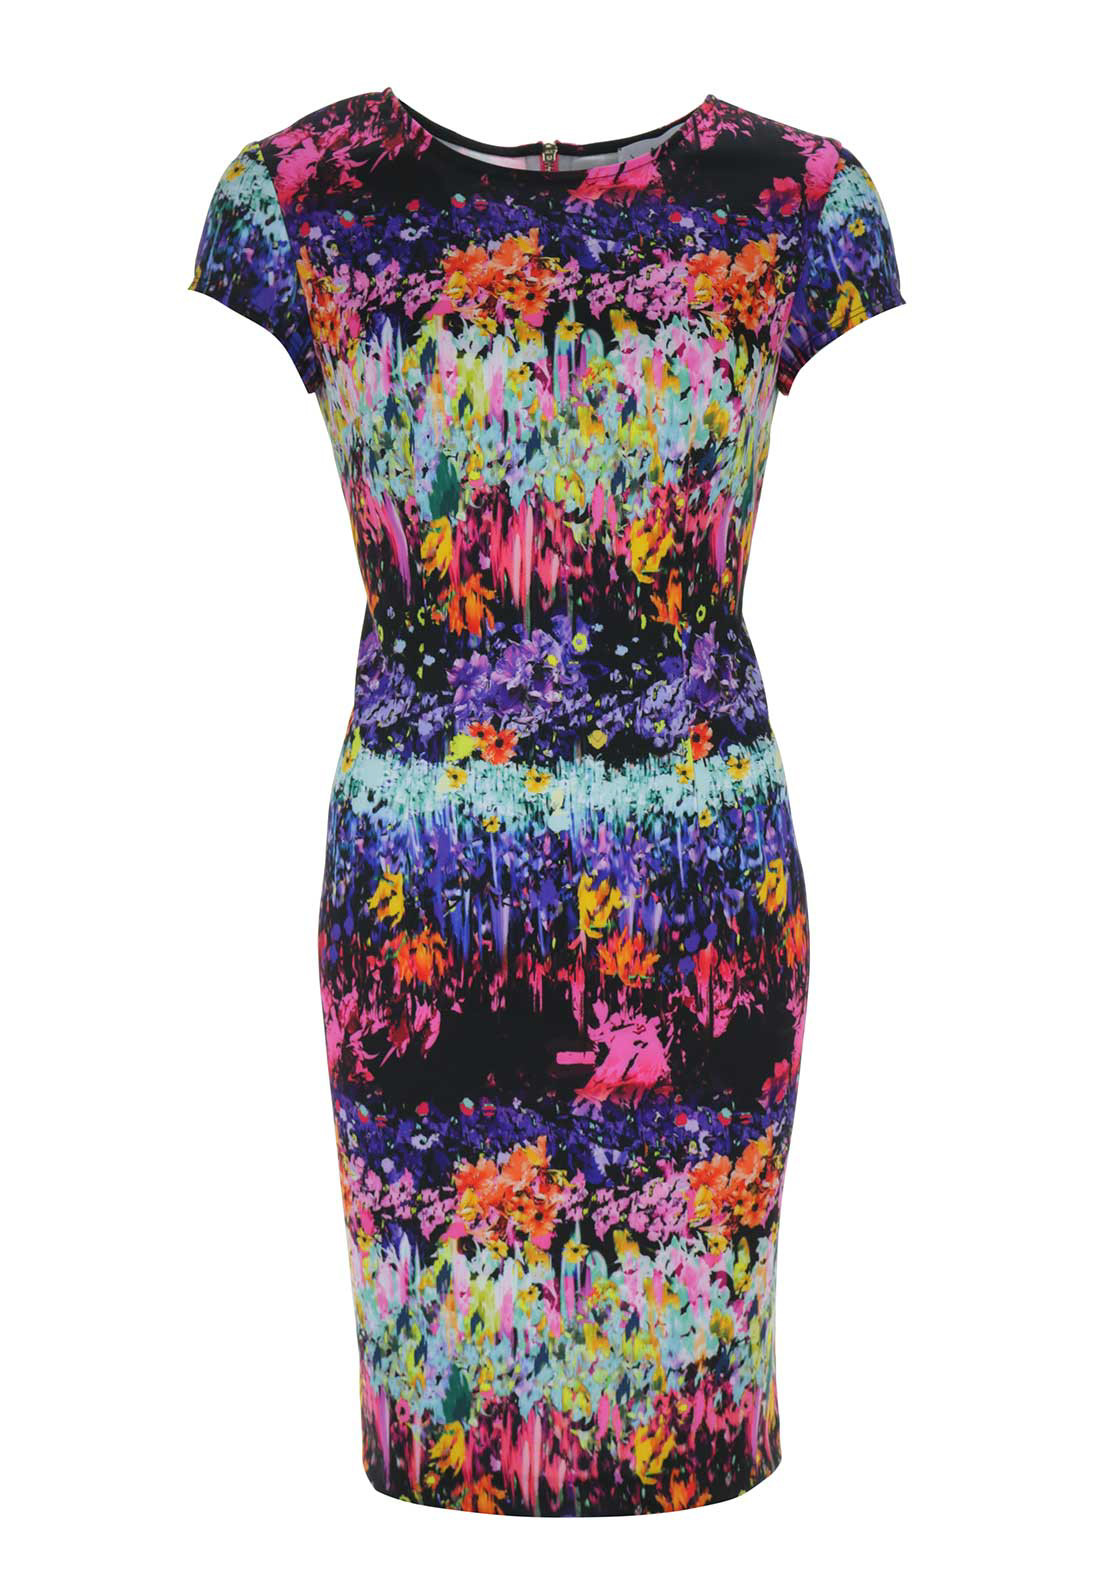 Joseph Ribkoff Abstract Floral Print Dress, Multi-Coloured